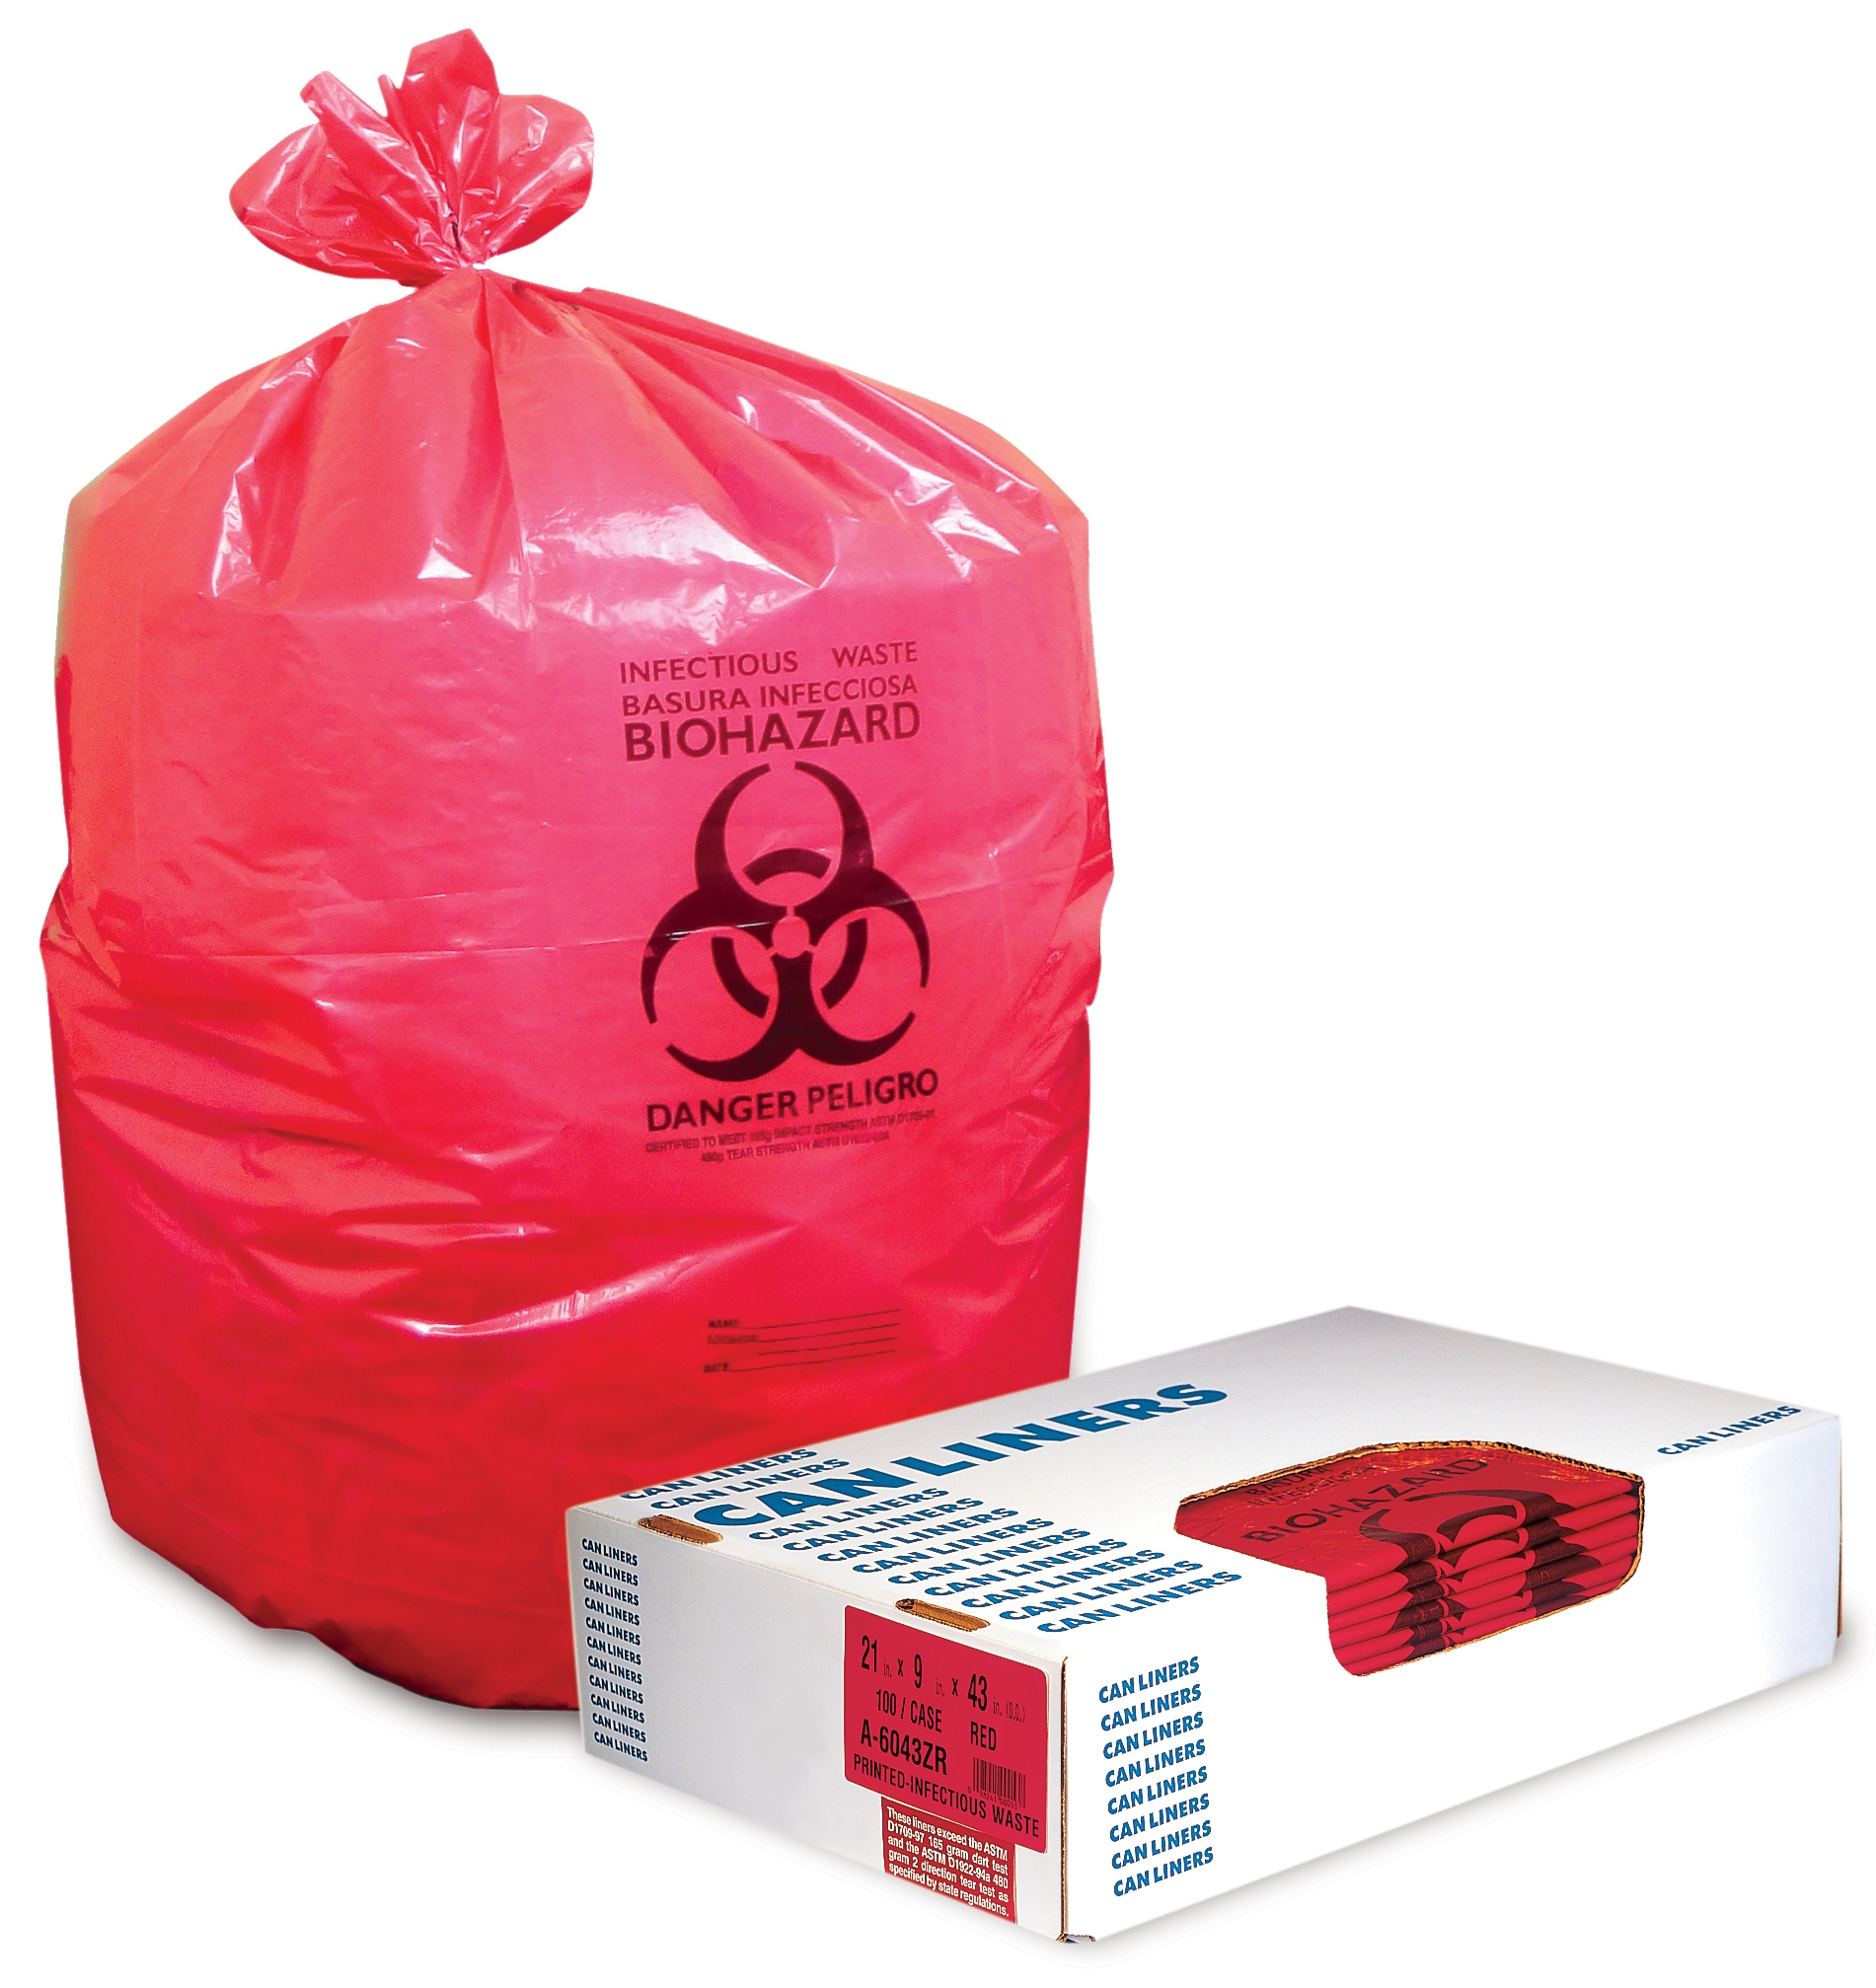 """Heritage Biohazard Can Liners, 8-10 Gallons, 24"""" x 23"""", 1.3 Mil., Red, Box Of 500"""